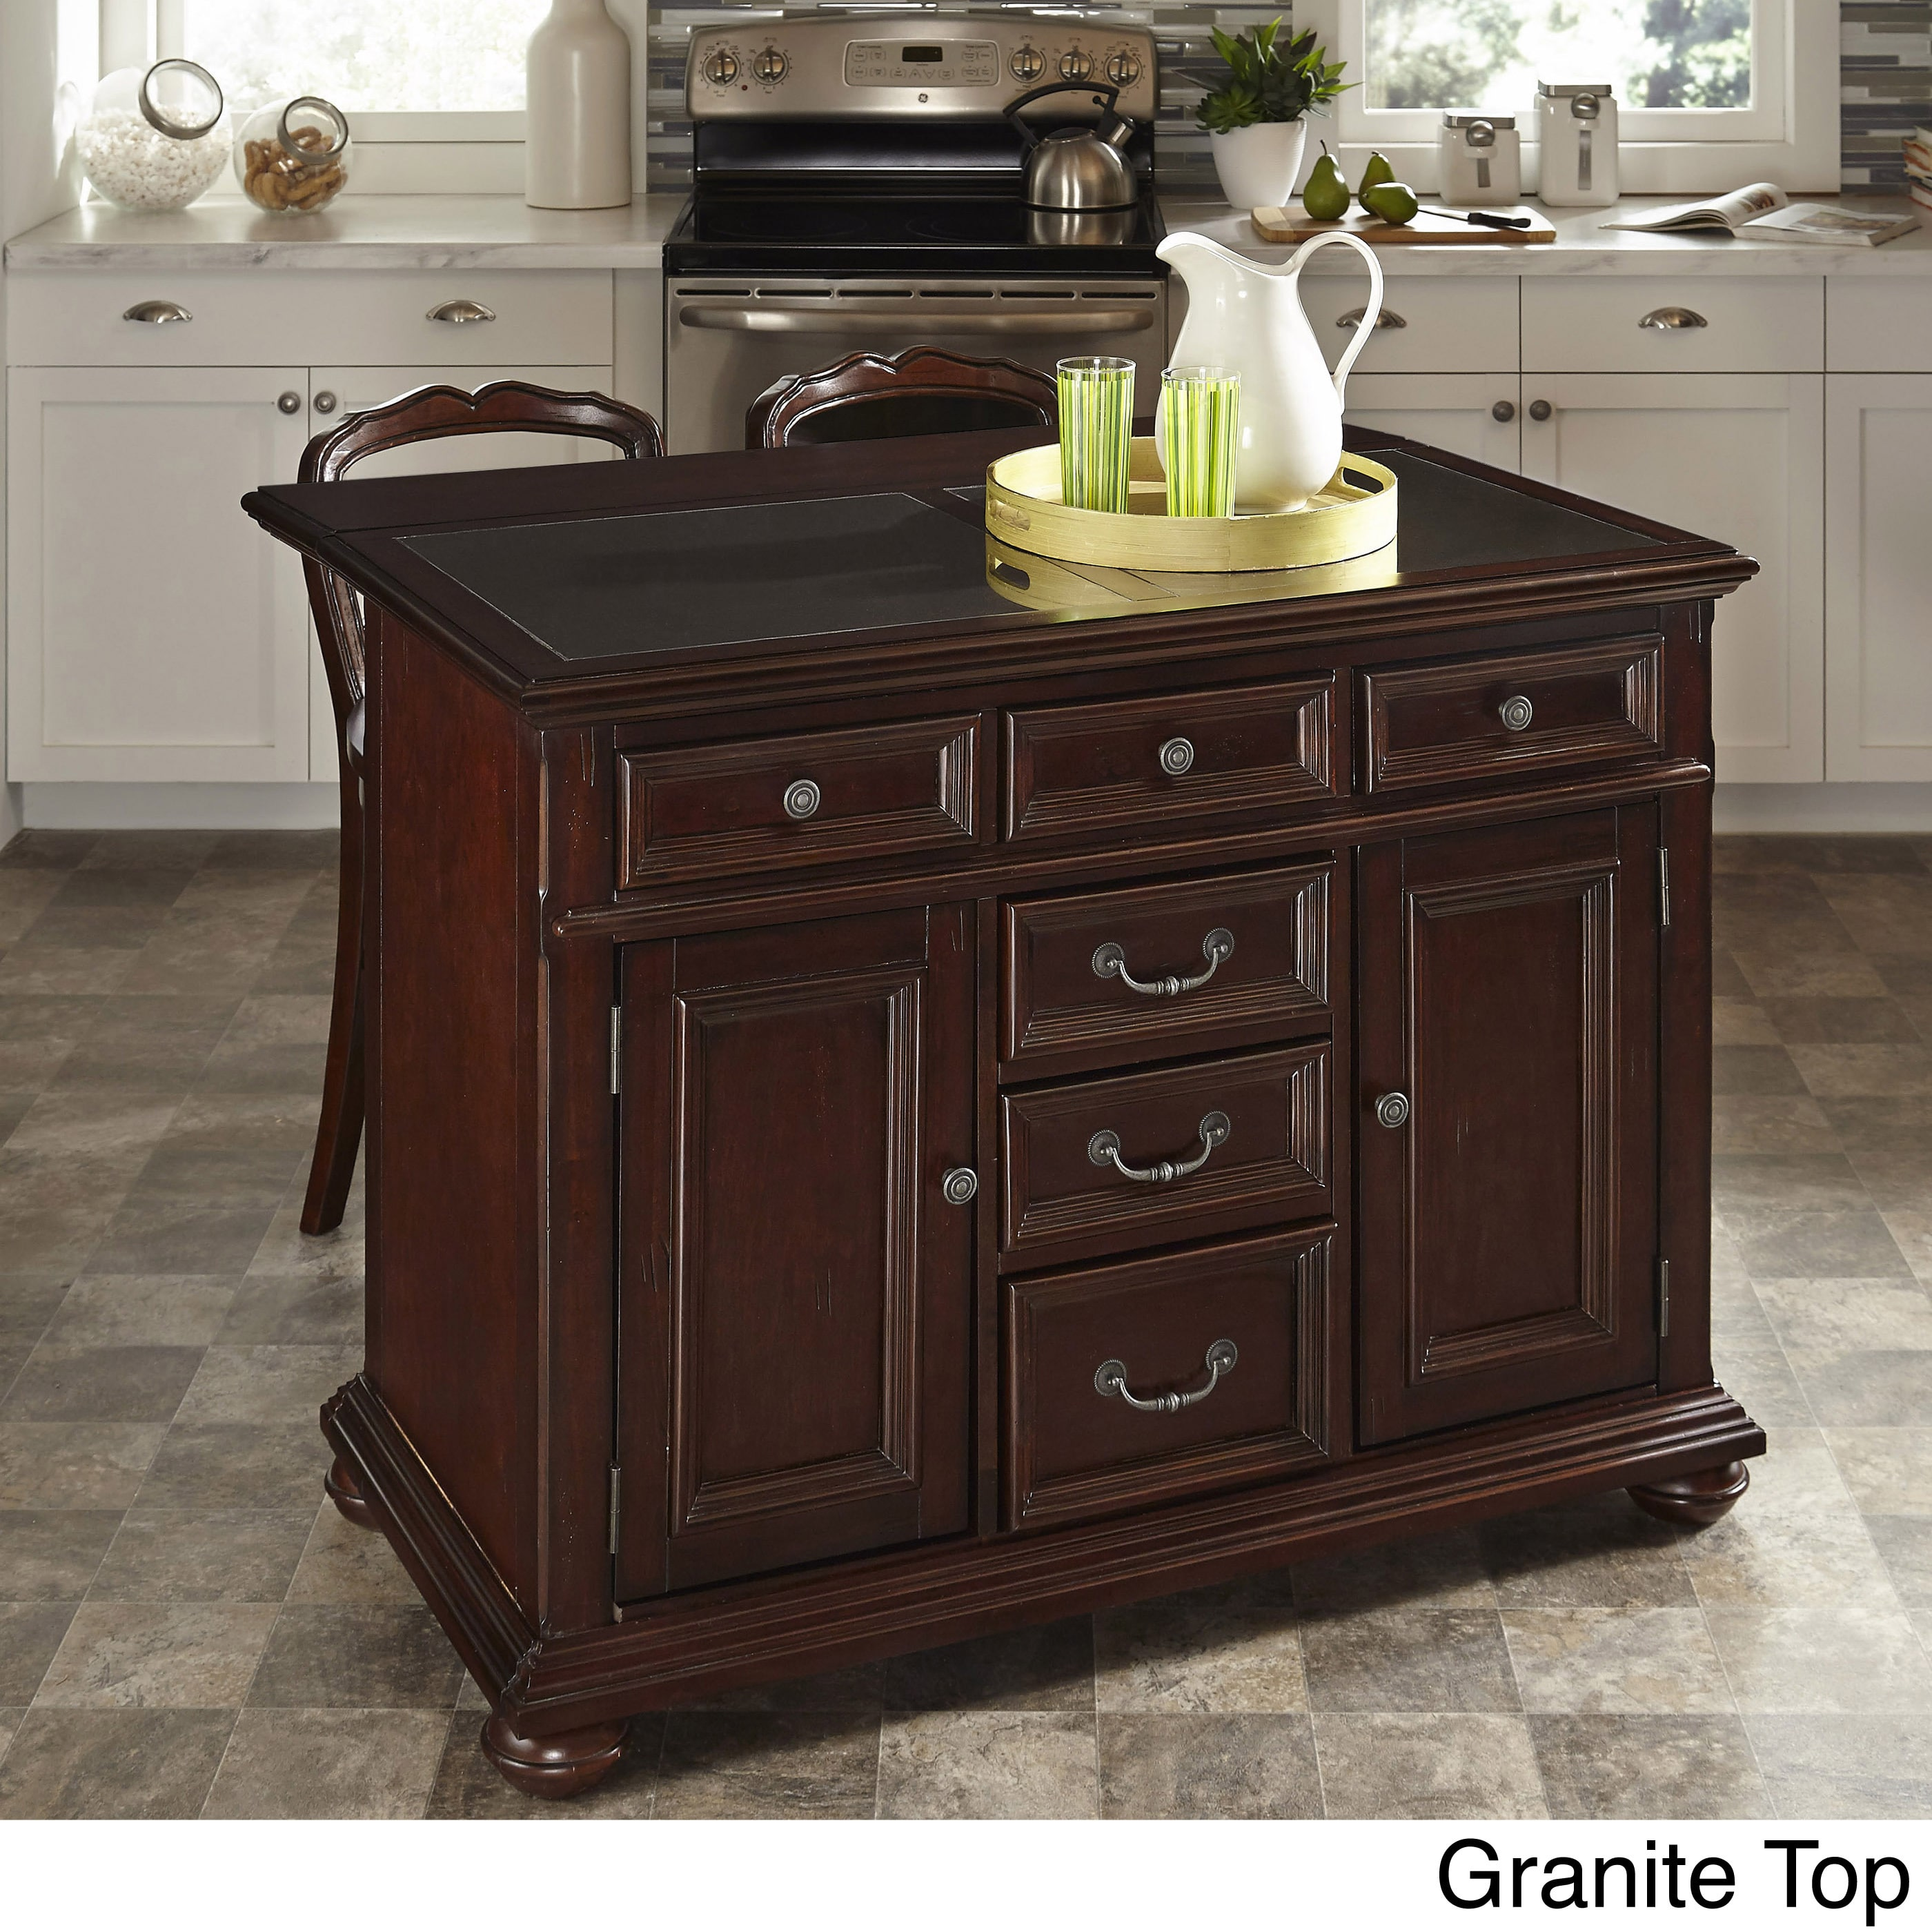 Home styles colonial classic kitchen island and two stools granite top